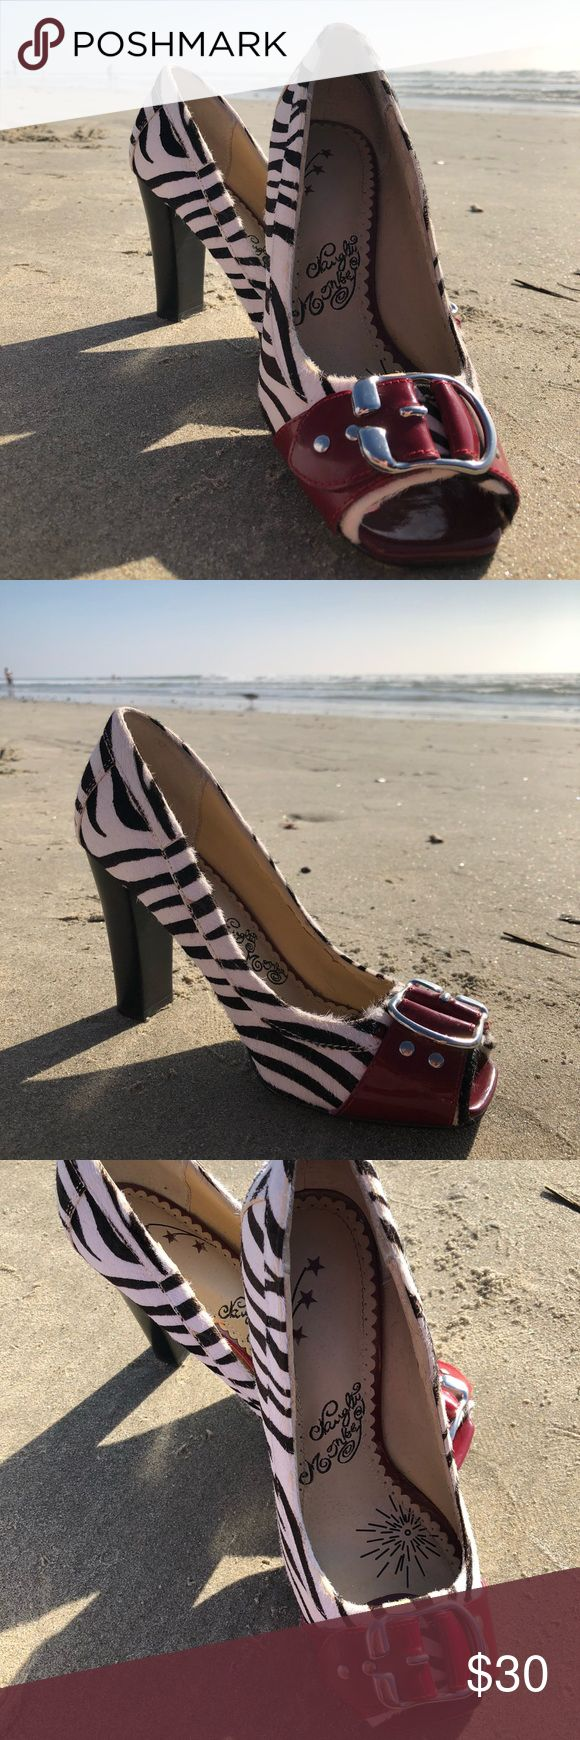 Naughty Monkey zebra heels with red accents Super fun shoes, in overall good condition minus some minor wear, mainly on bottom. naughty monkey Shoes Heels